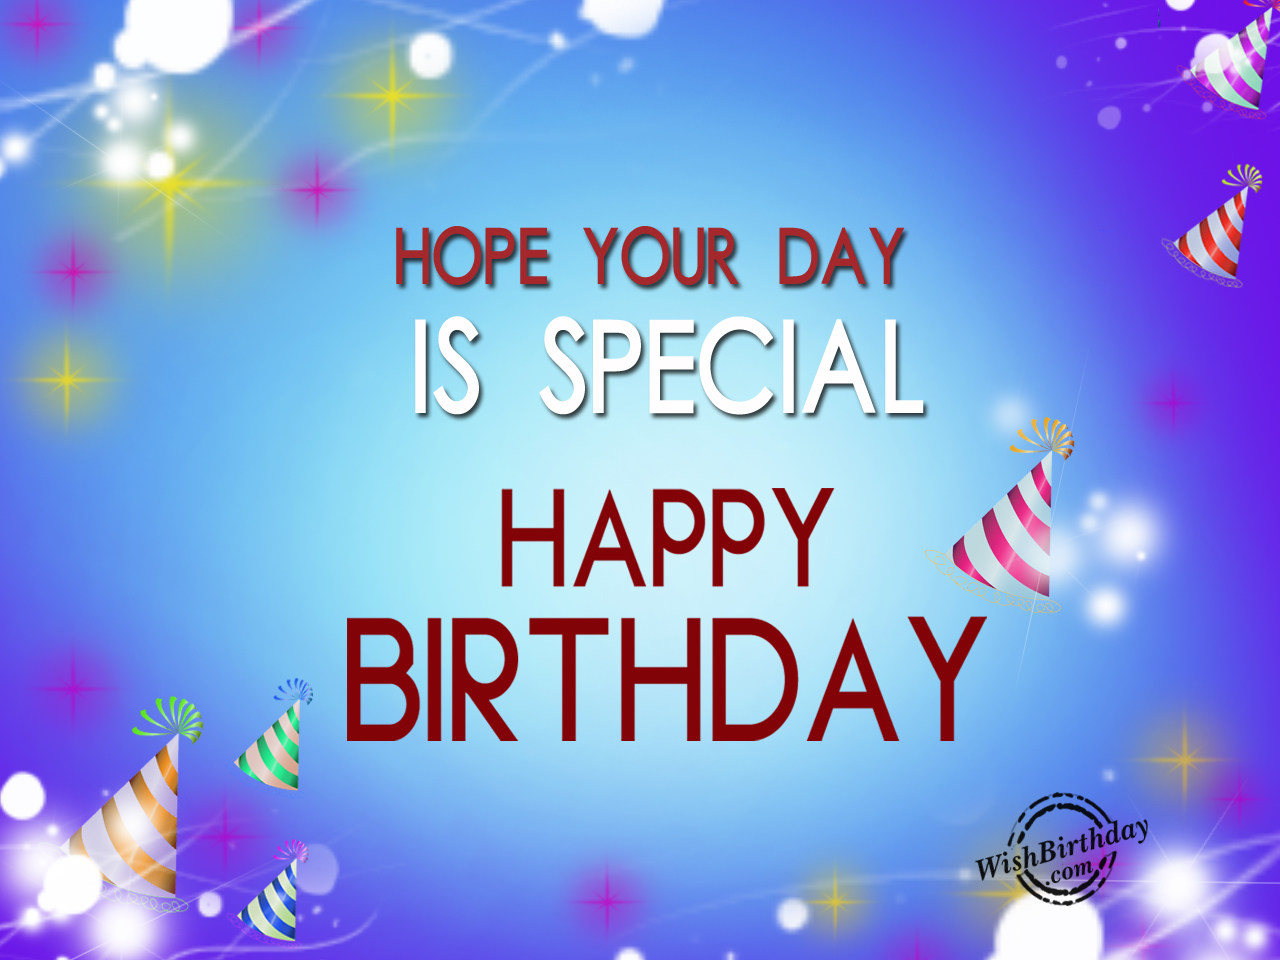 happy birthday special picture ; Hope-your-day-is-special